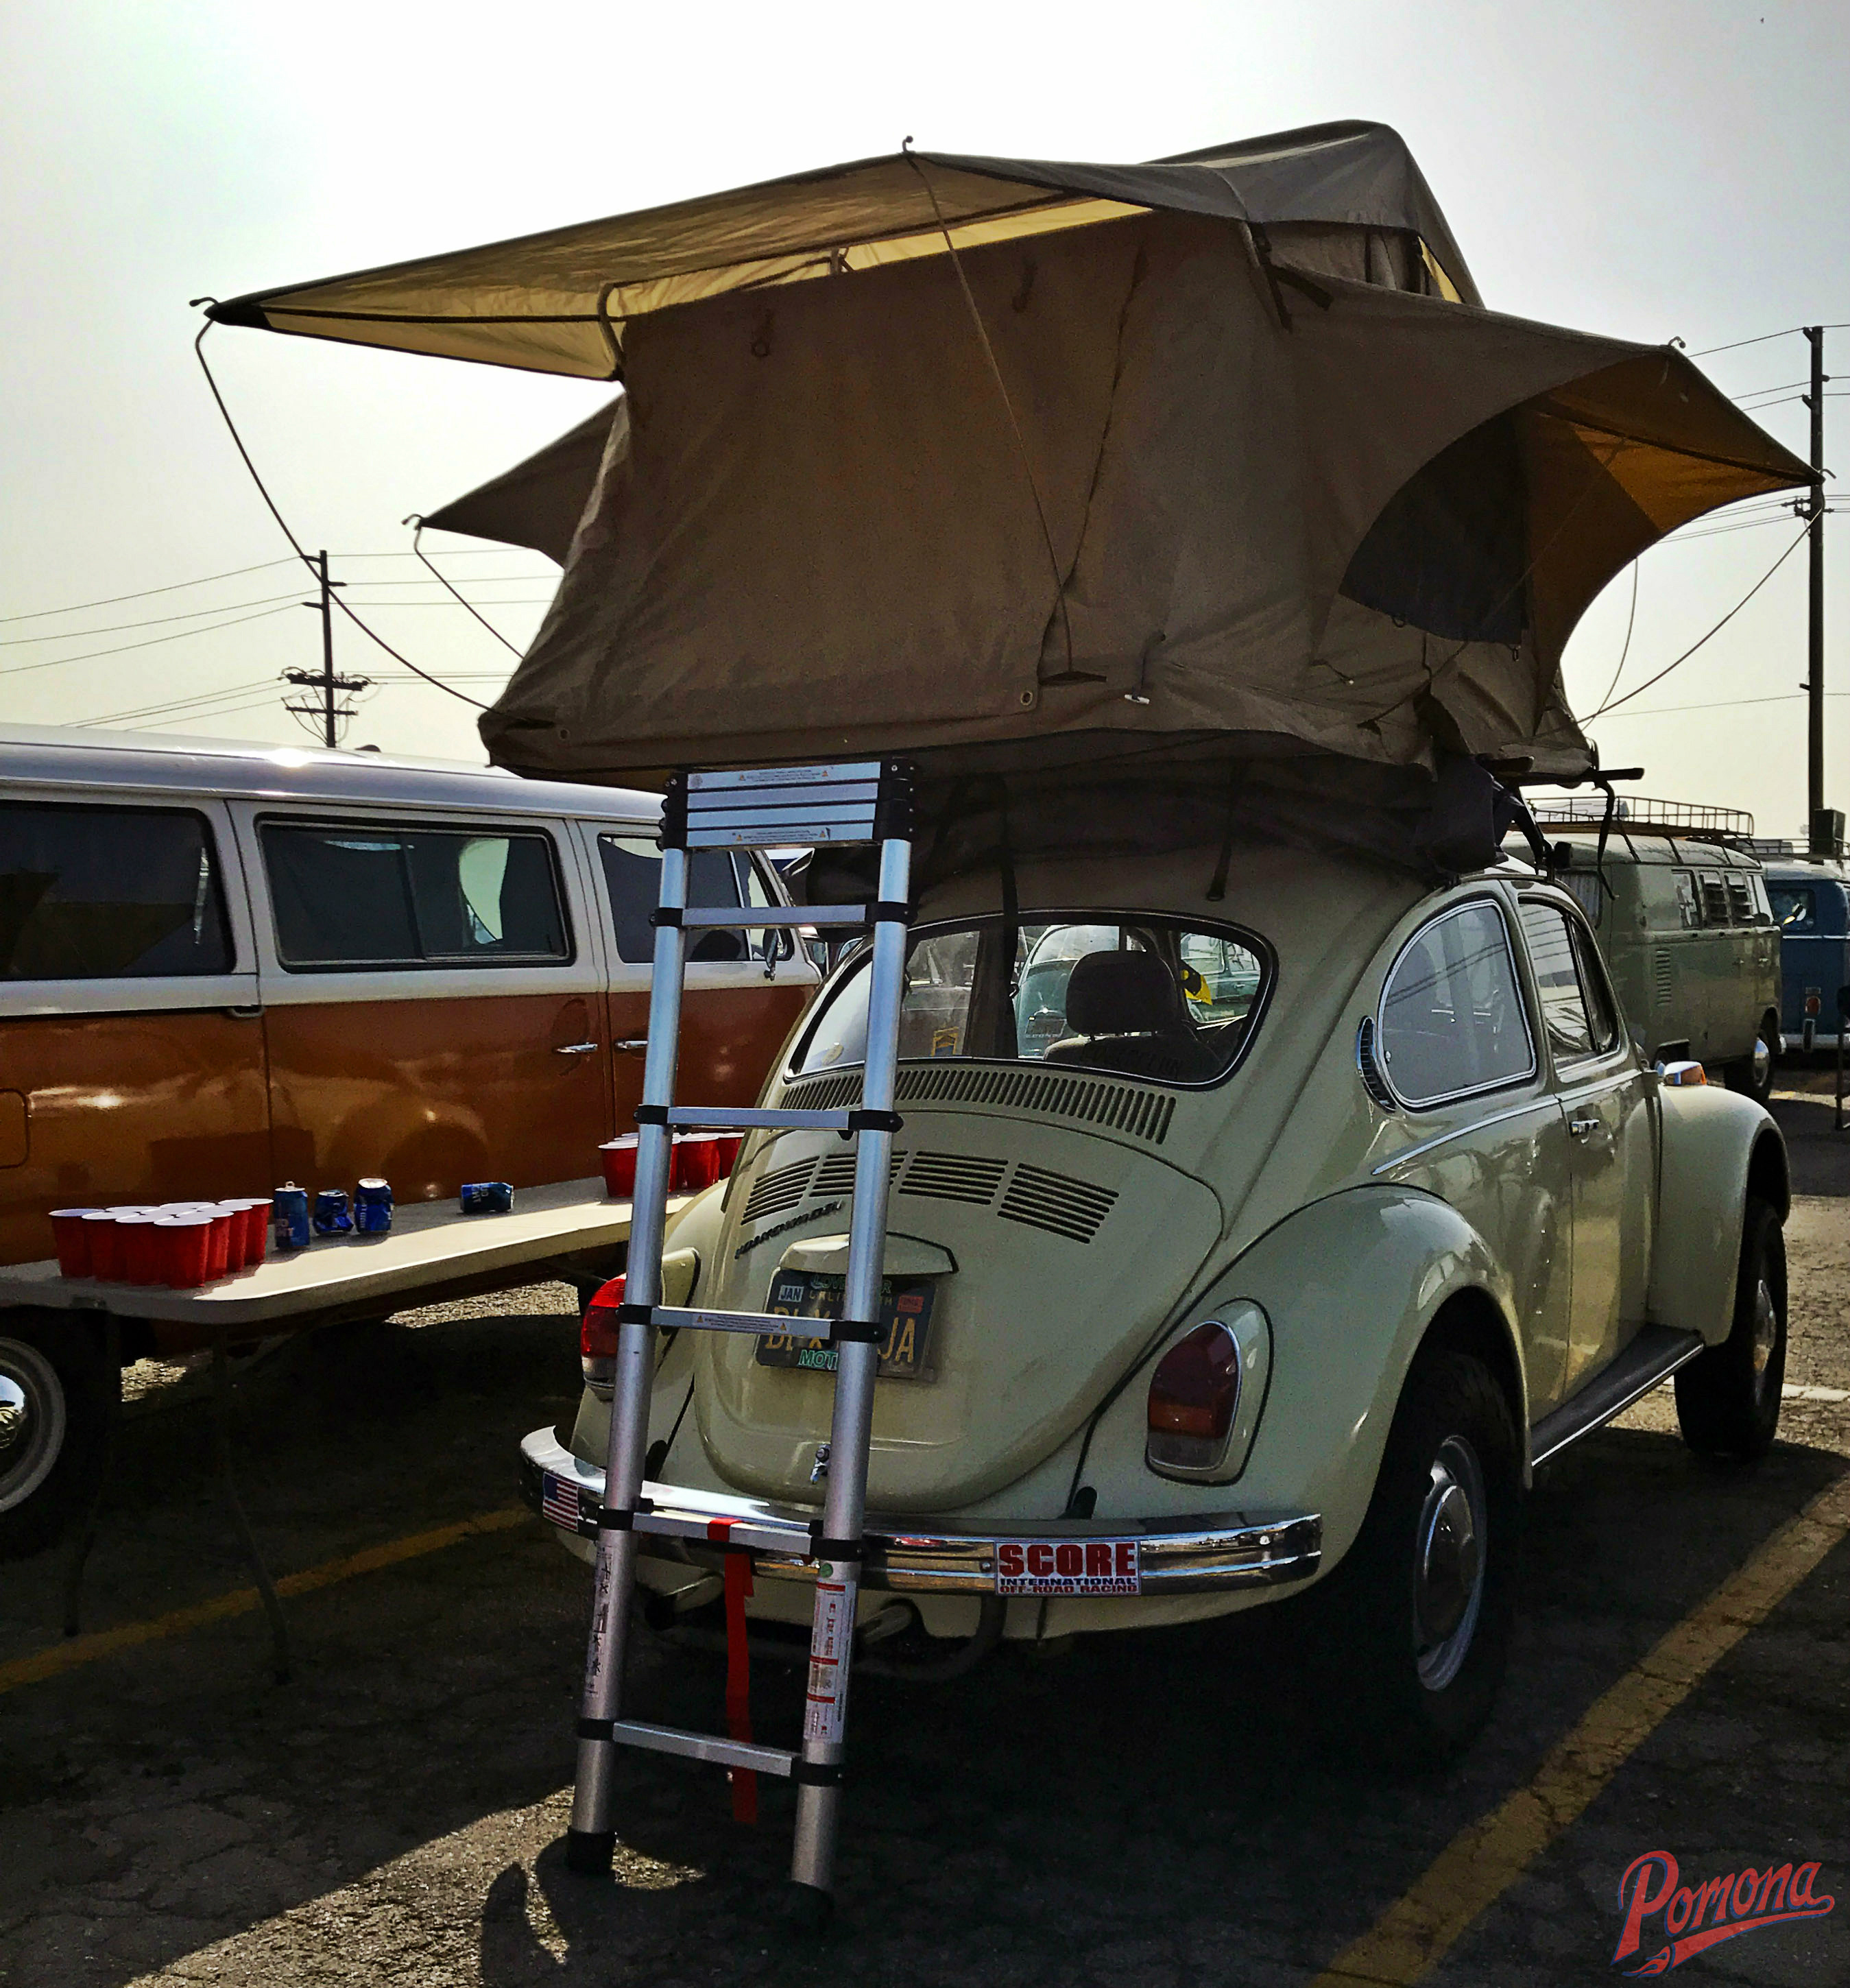 VW Baja Bug With Camping Tent on Top